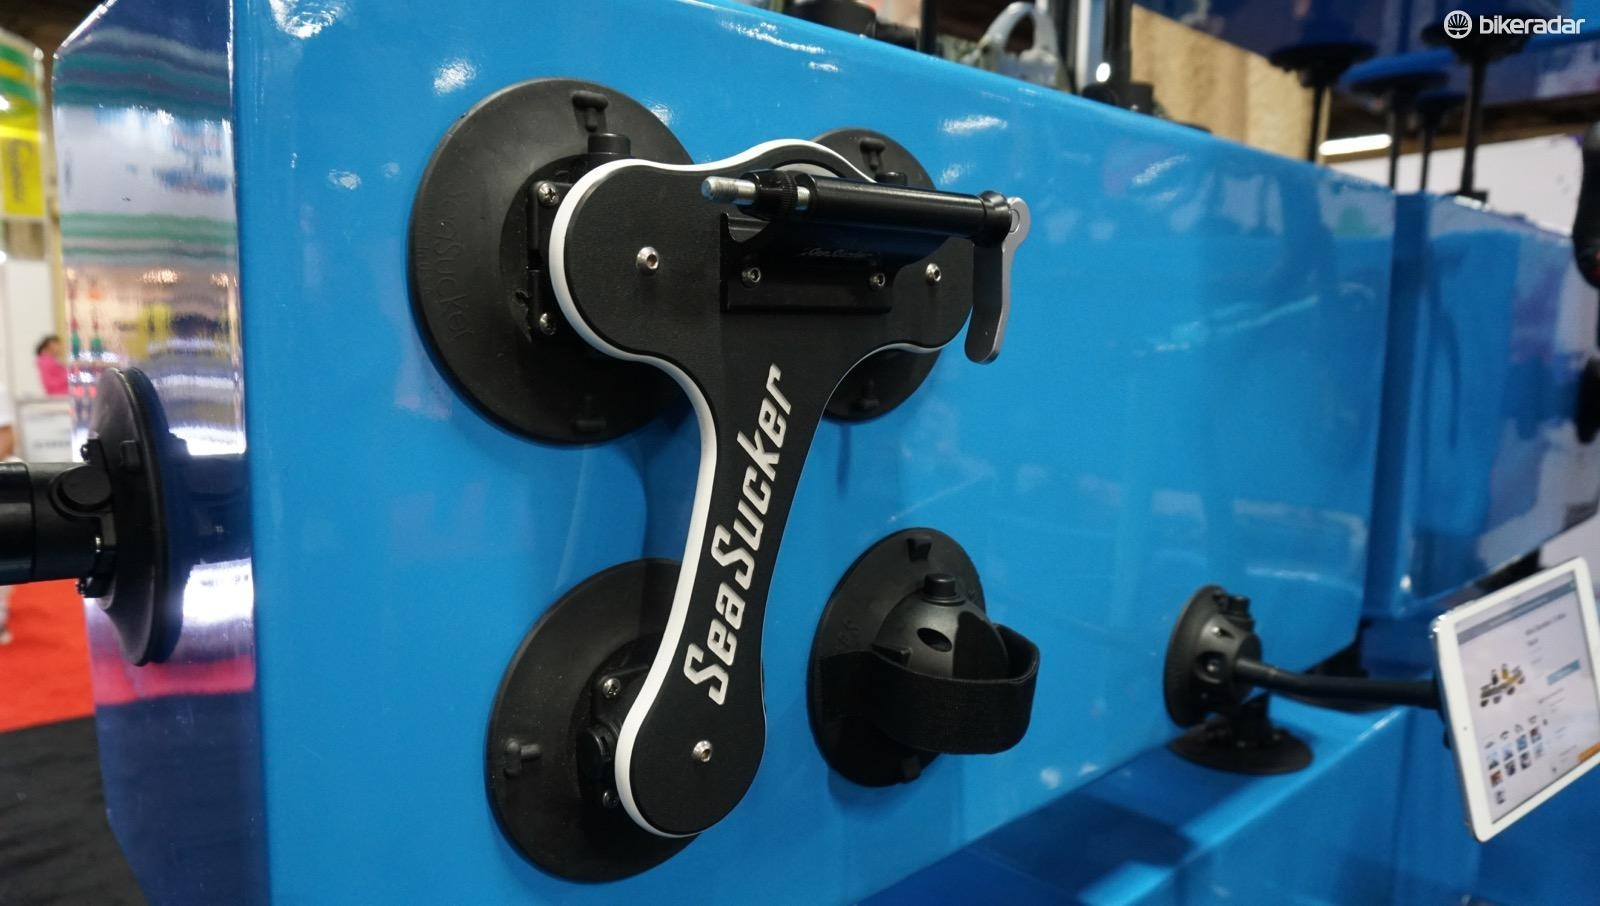 The single-bike Talon is the company's most popular product